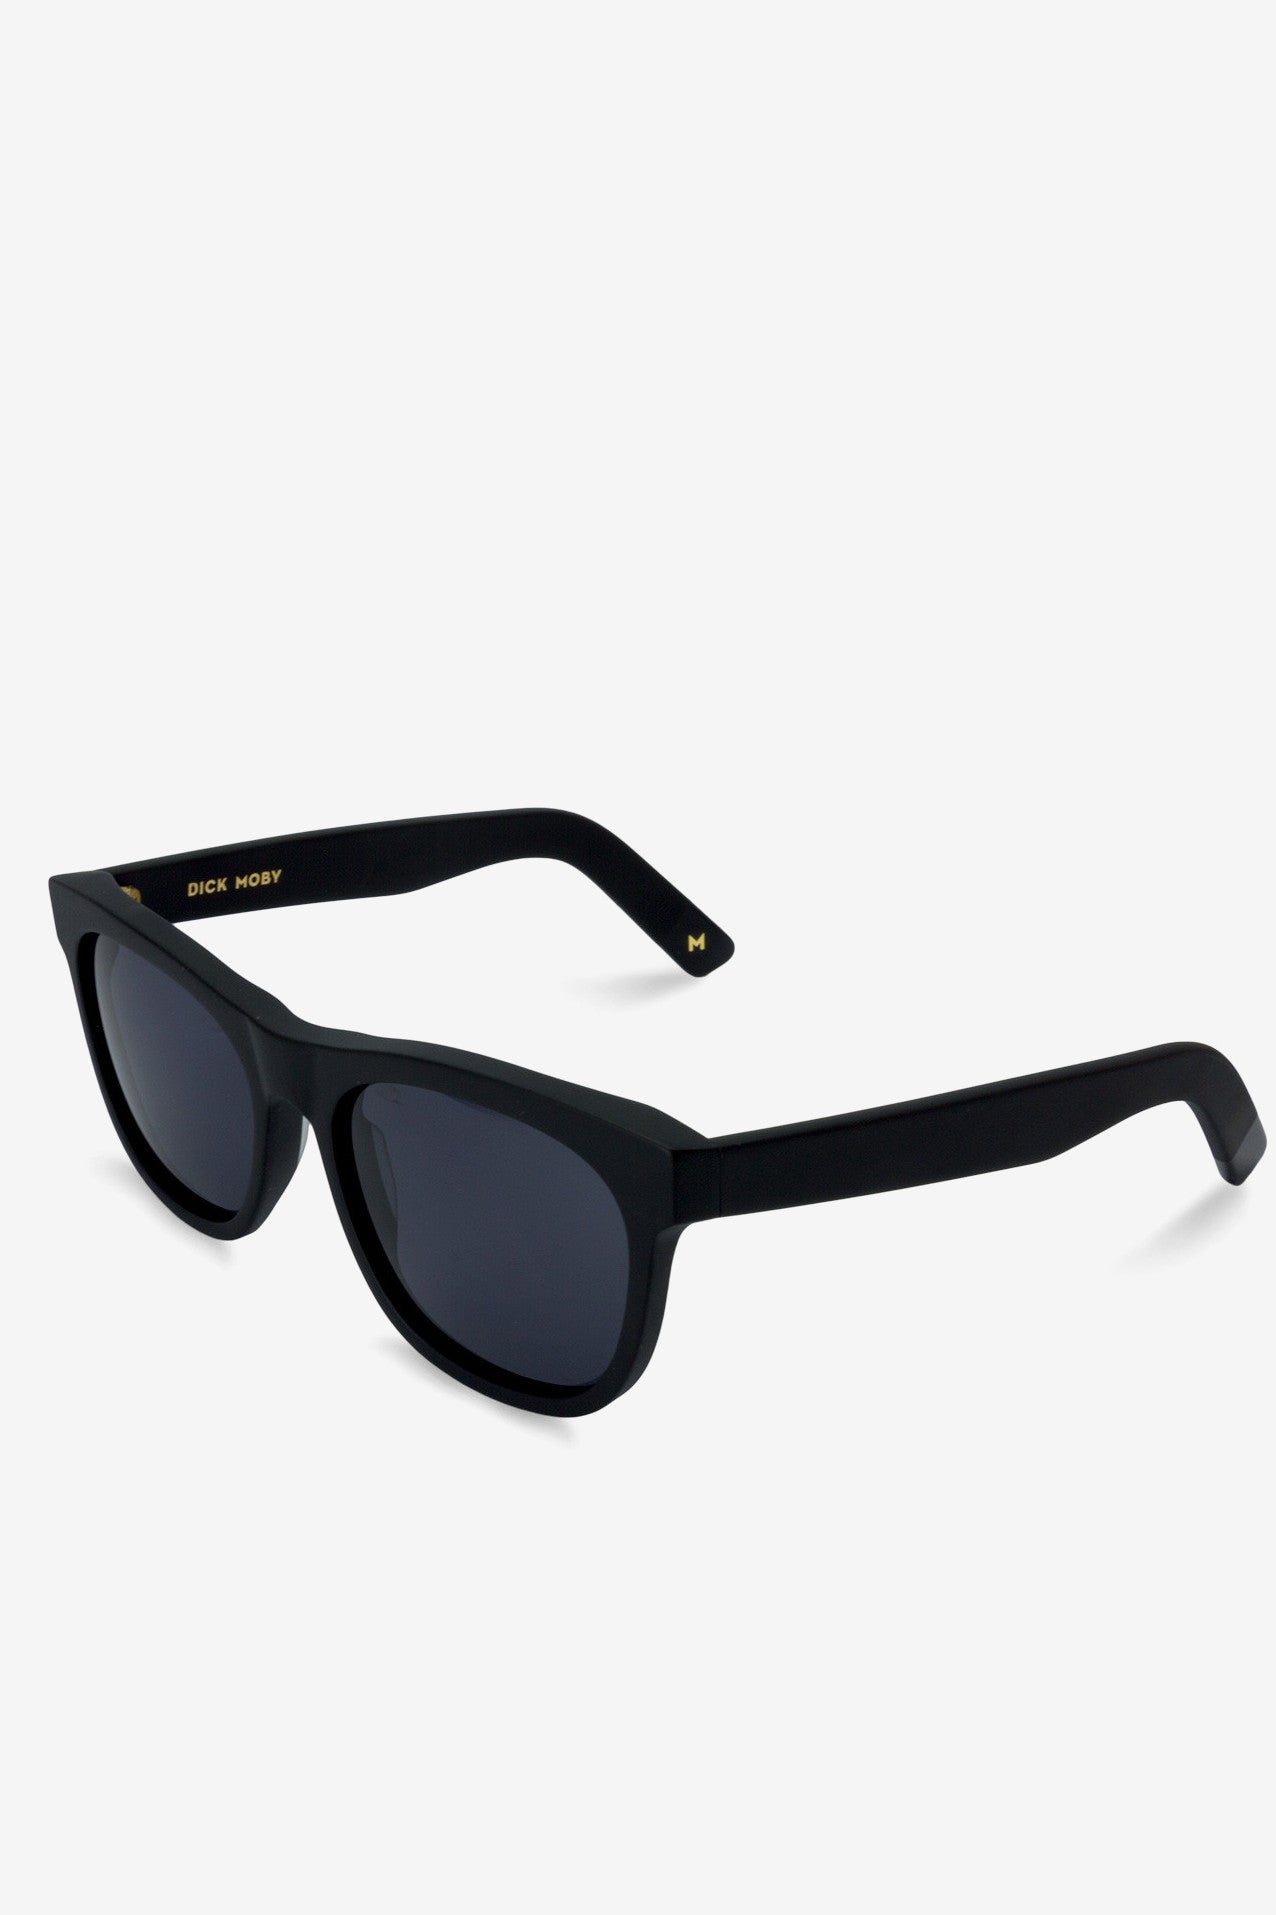 LAX Matte Recycled Black, Sunglasses, Dick Moby - Six and Sons